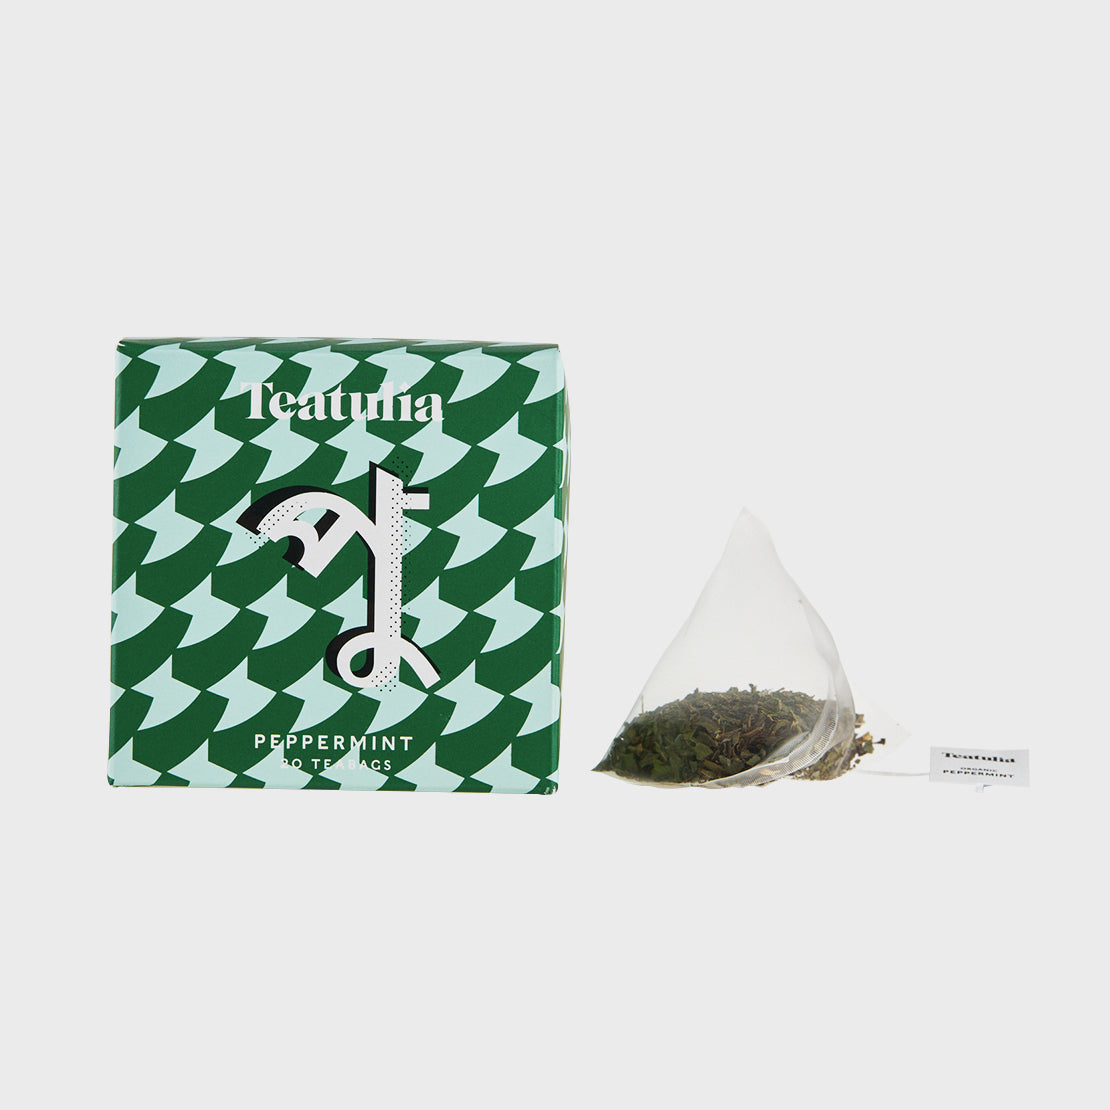 Peppermint Silk Pyramid Teabags